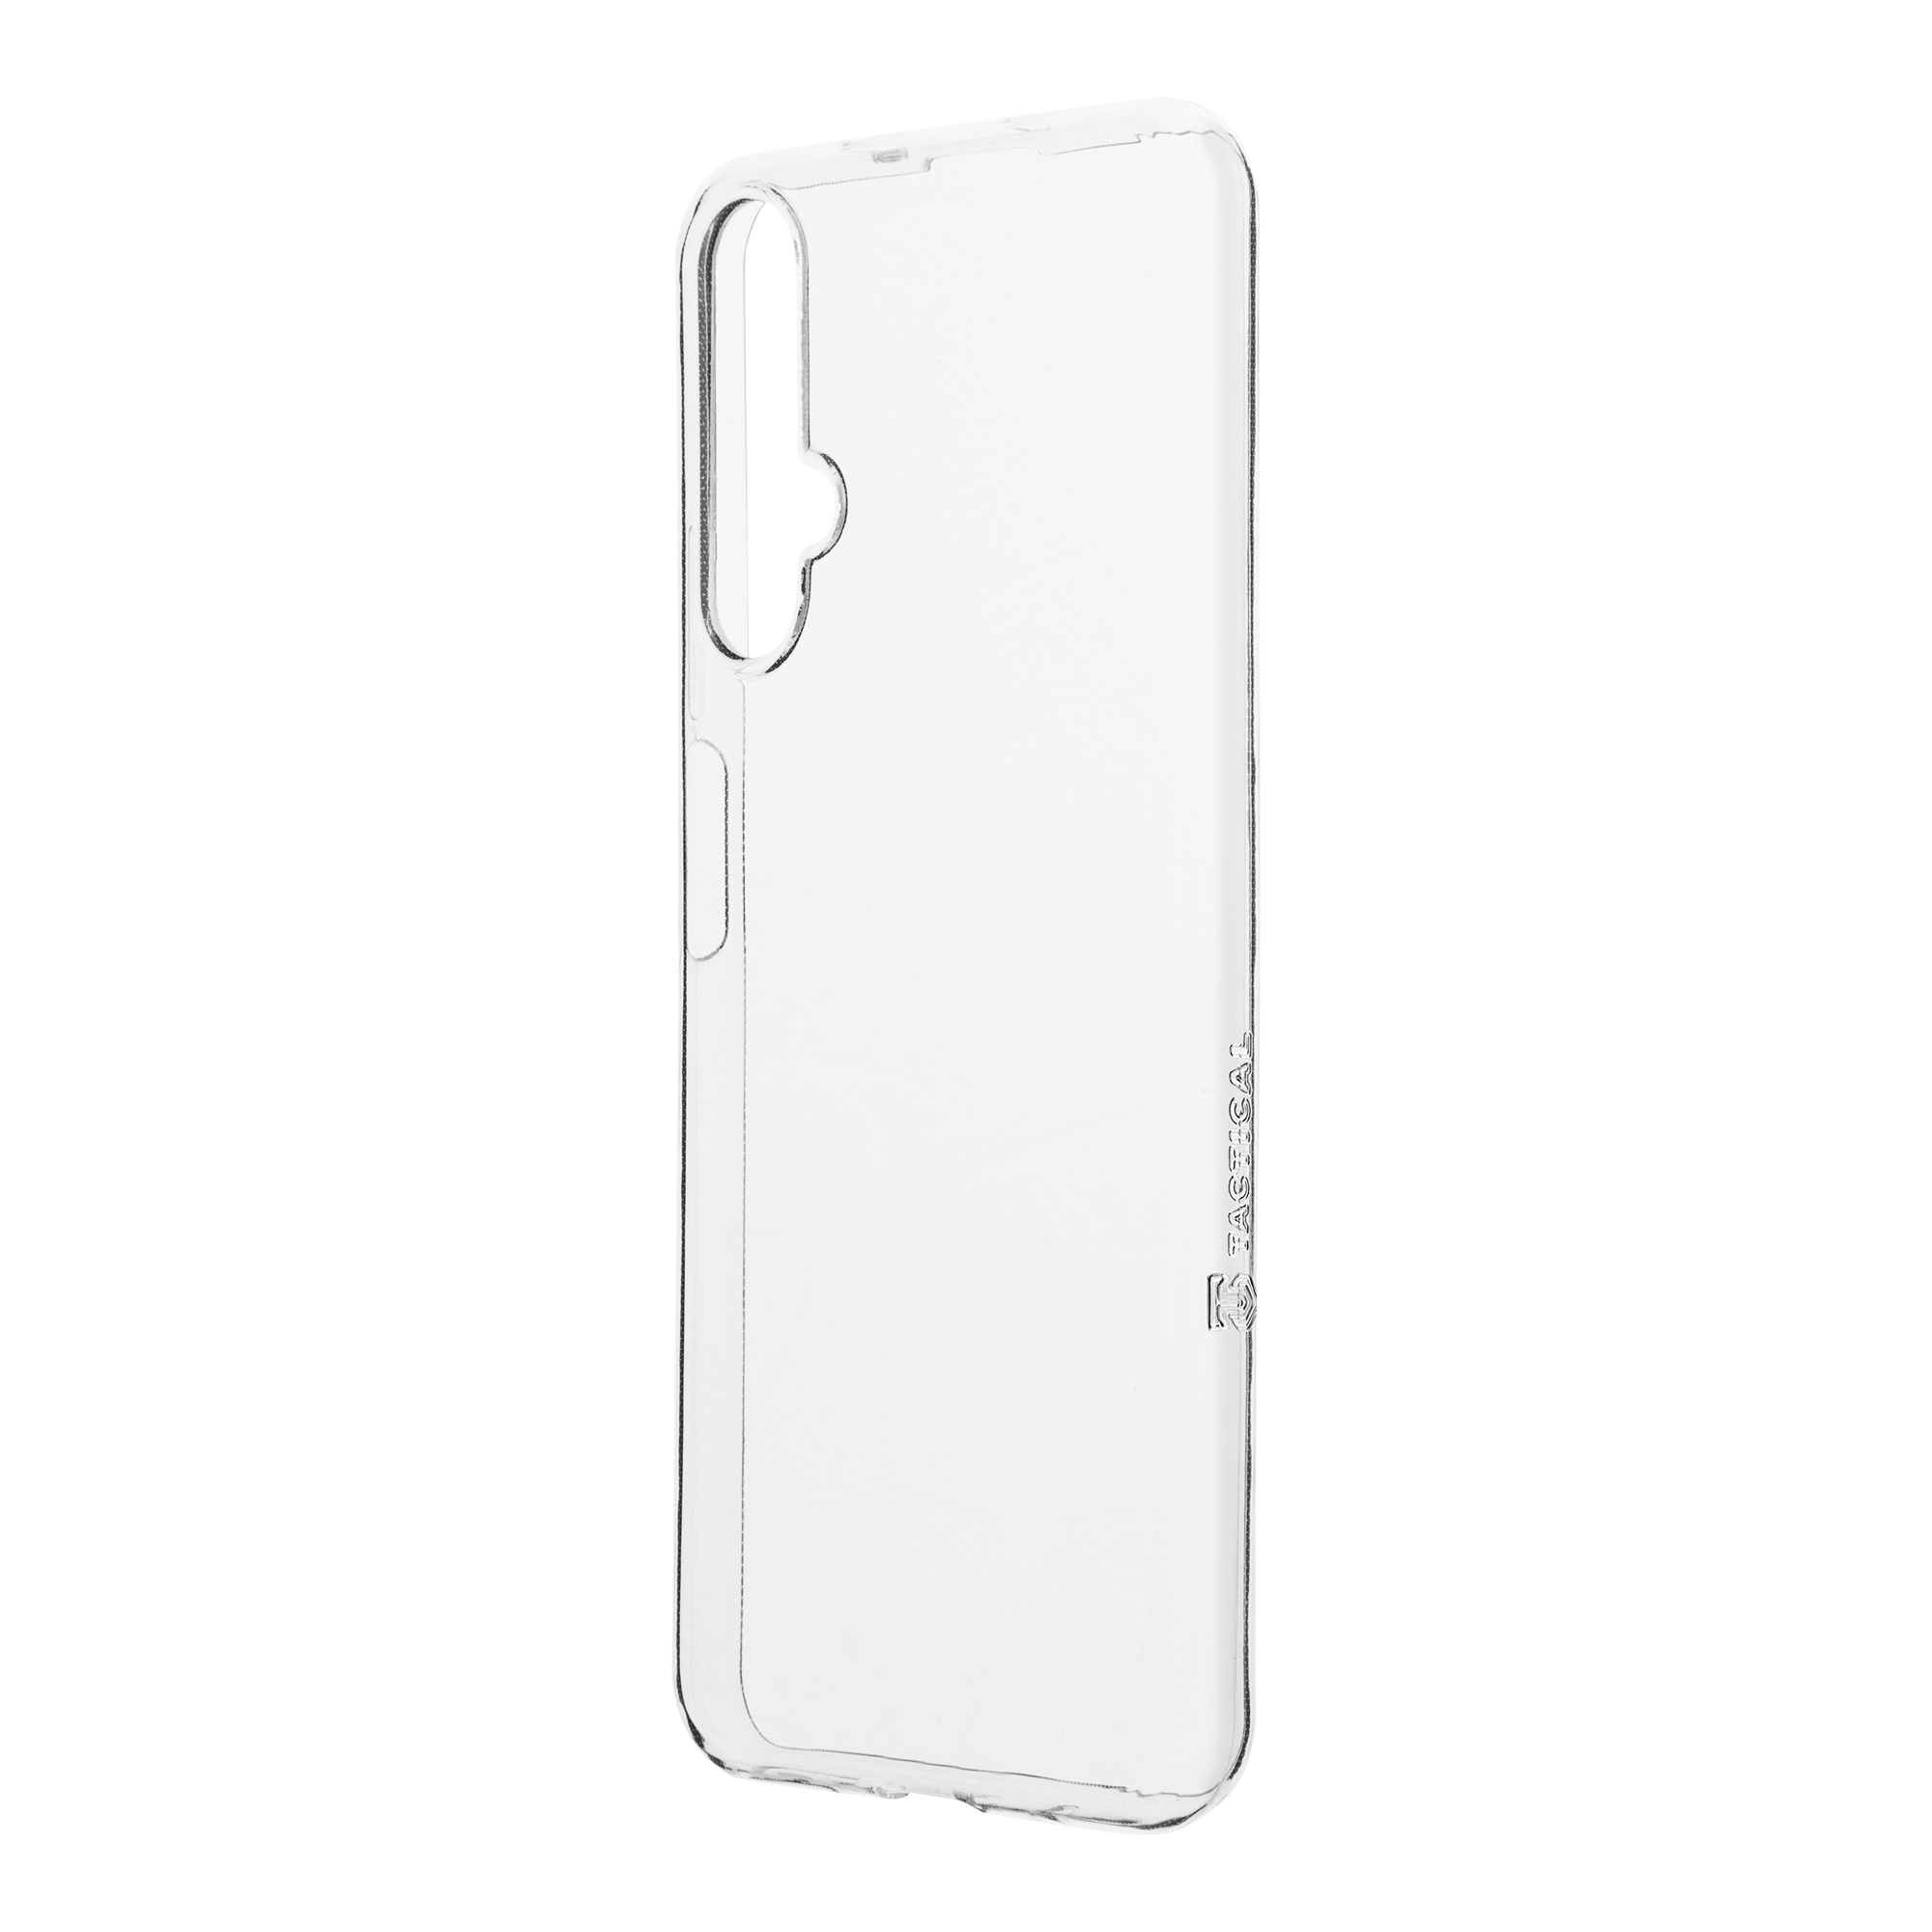 Tactical TPU Kryt pro Honor 20/Huawei Nova 5T Transparent 8596311088520